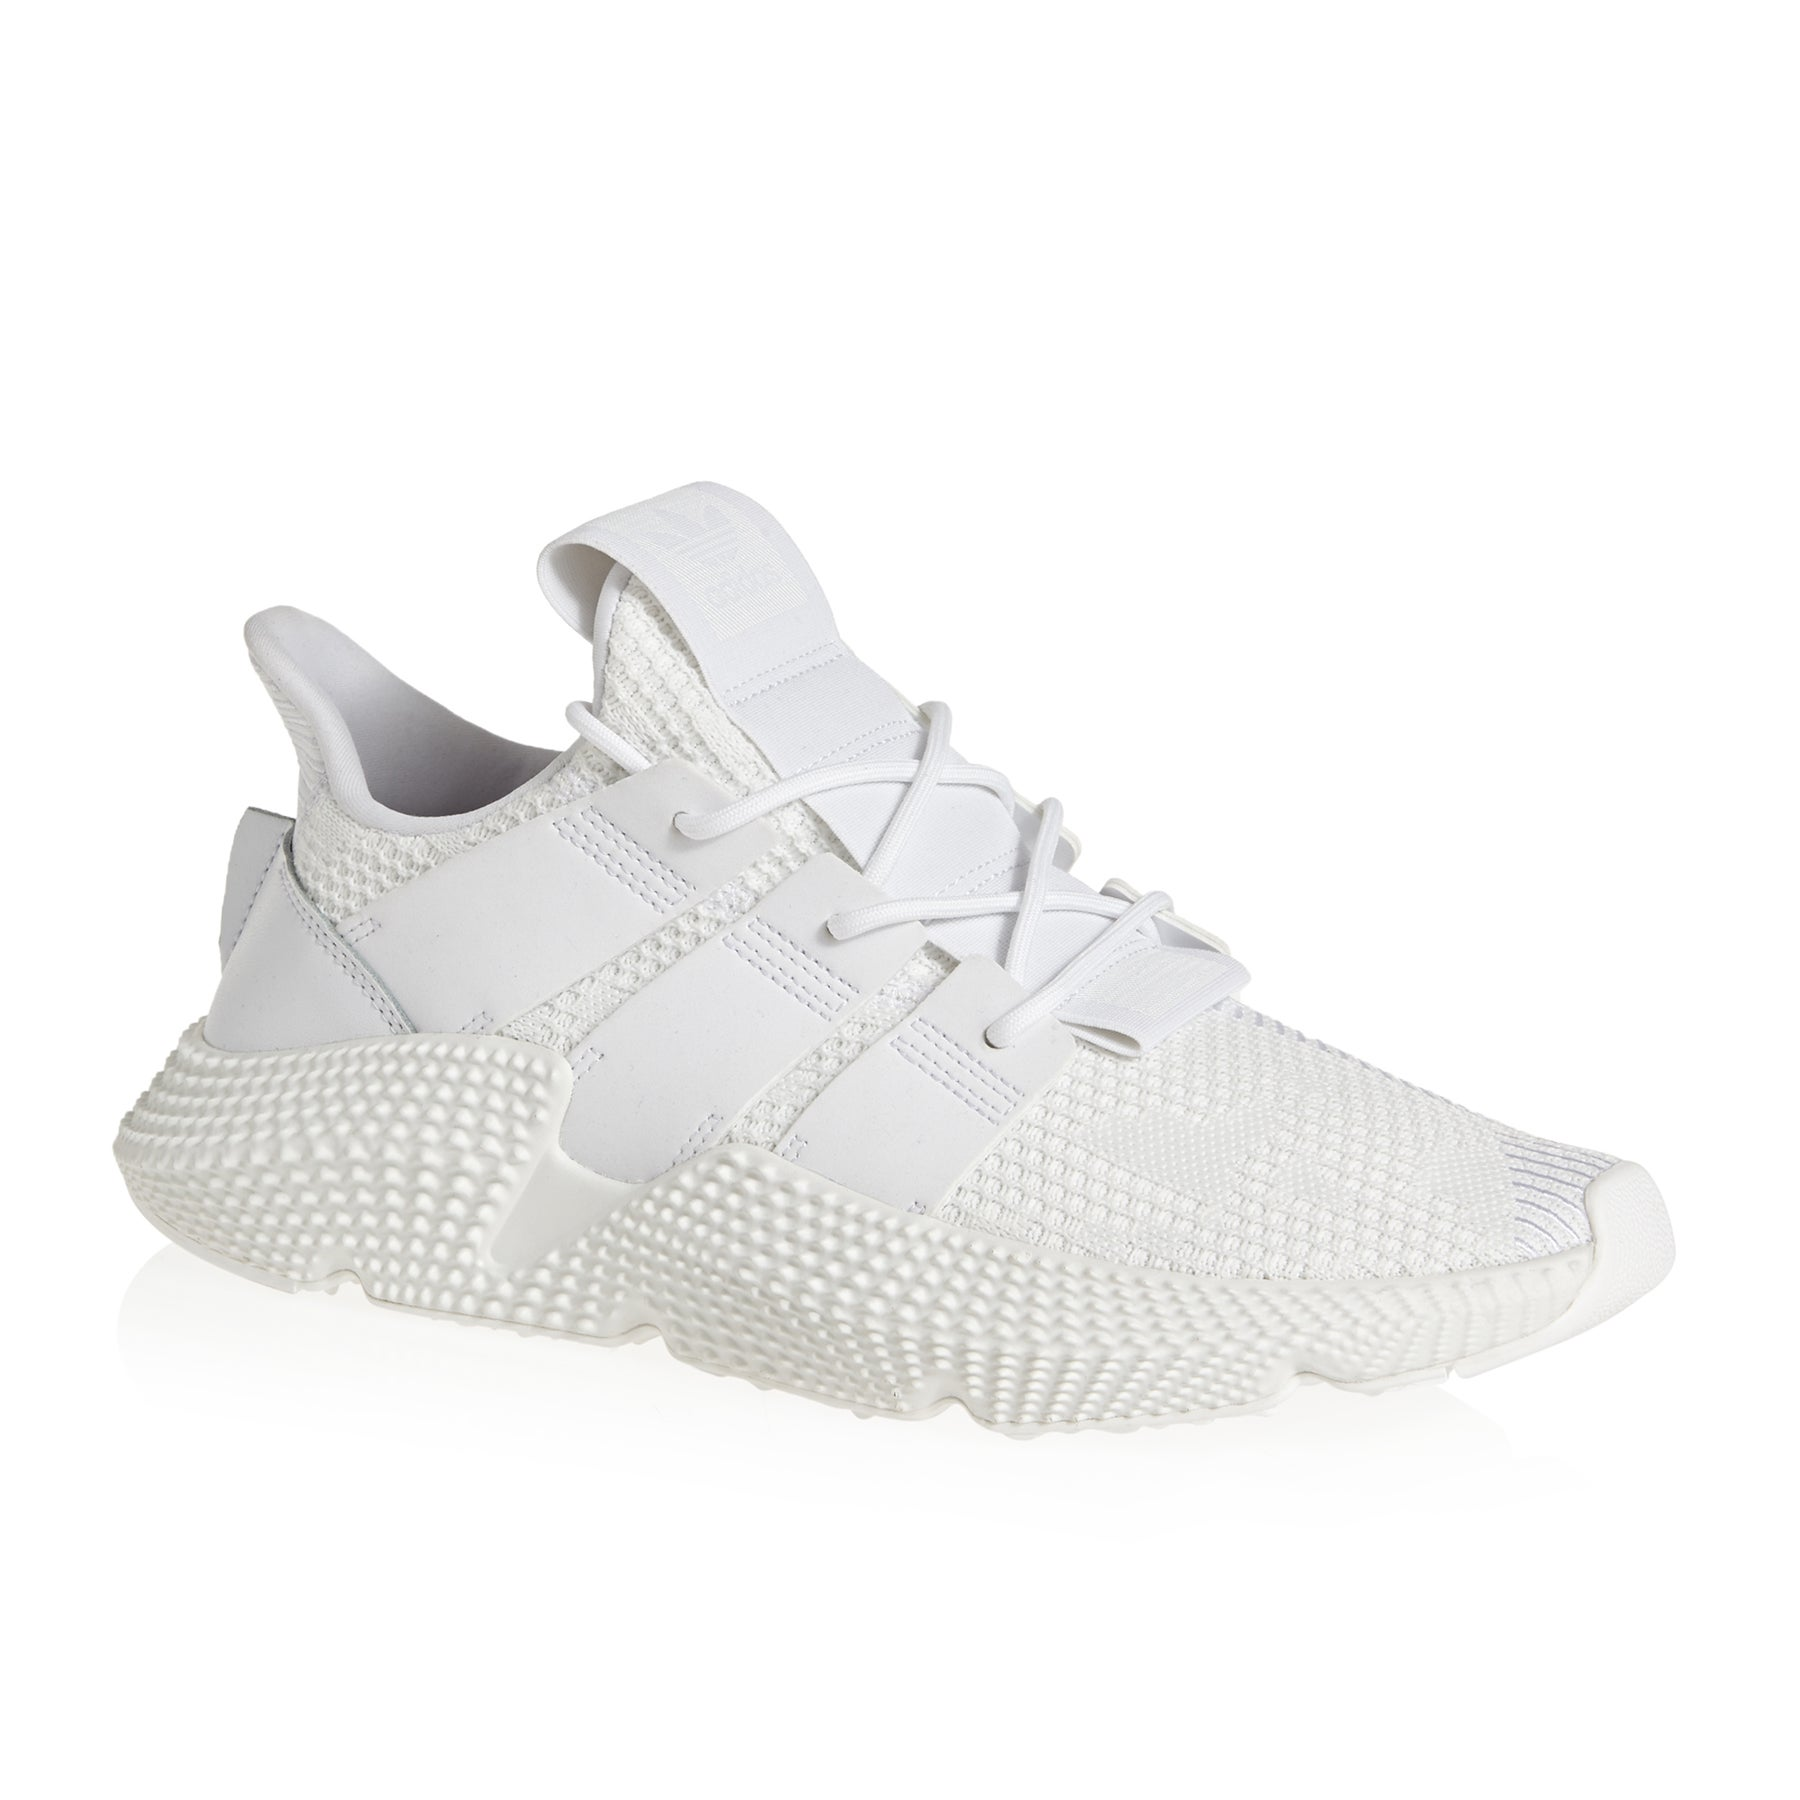 f1c23df133b226 Adidas Originals Prophere Shoes available from Surfdome